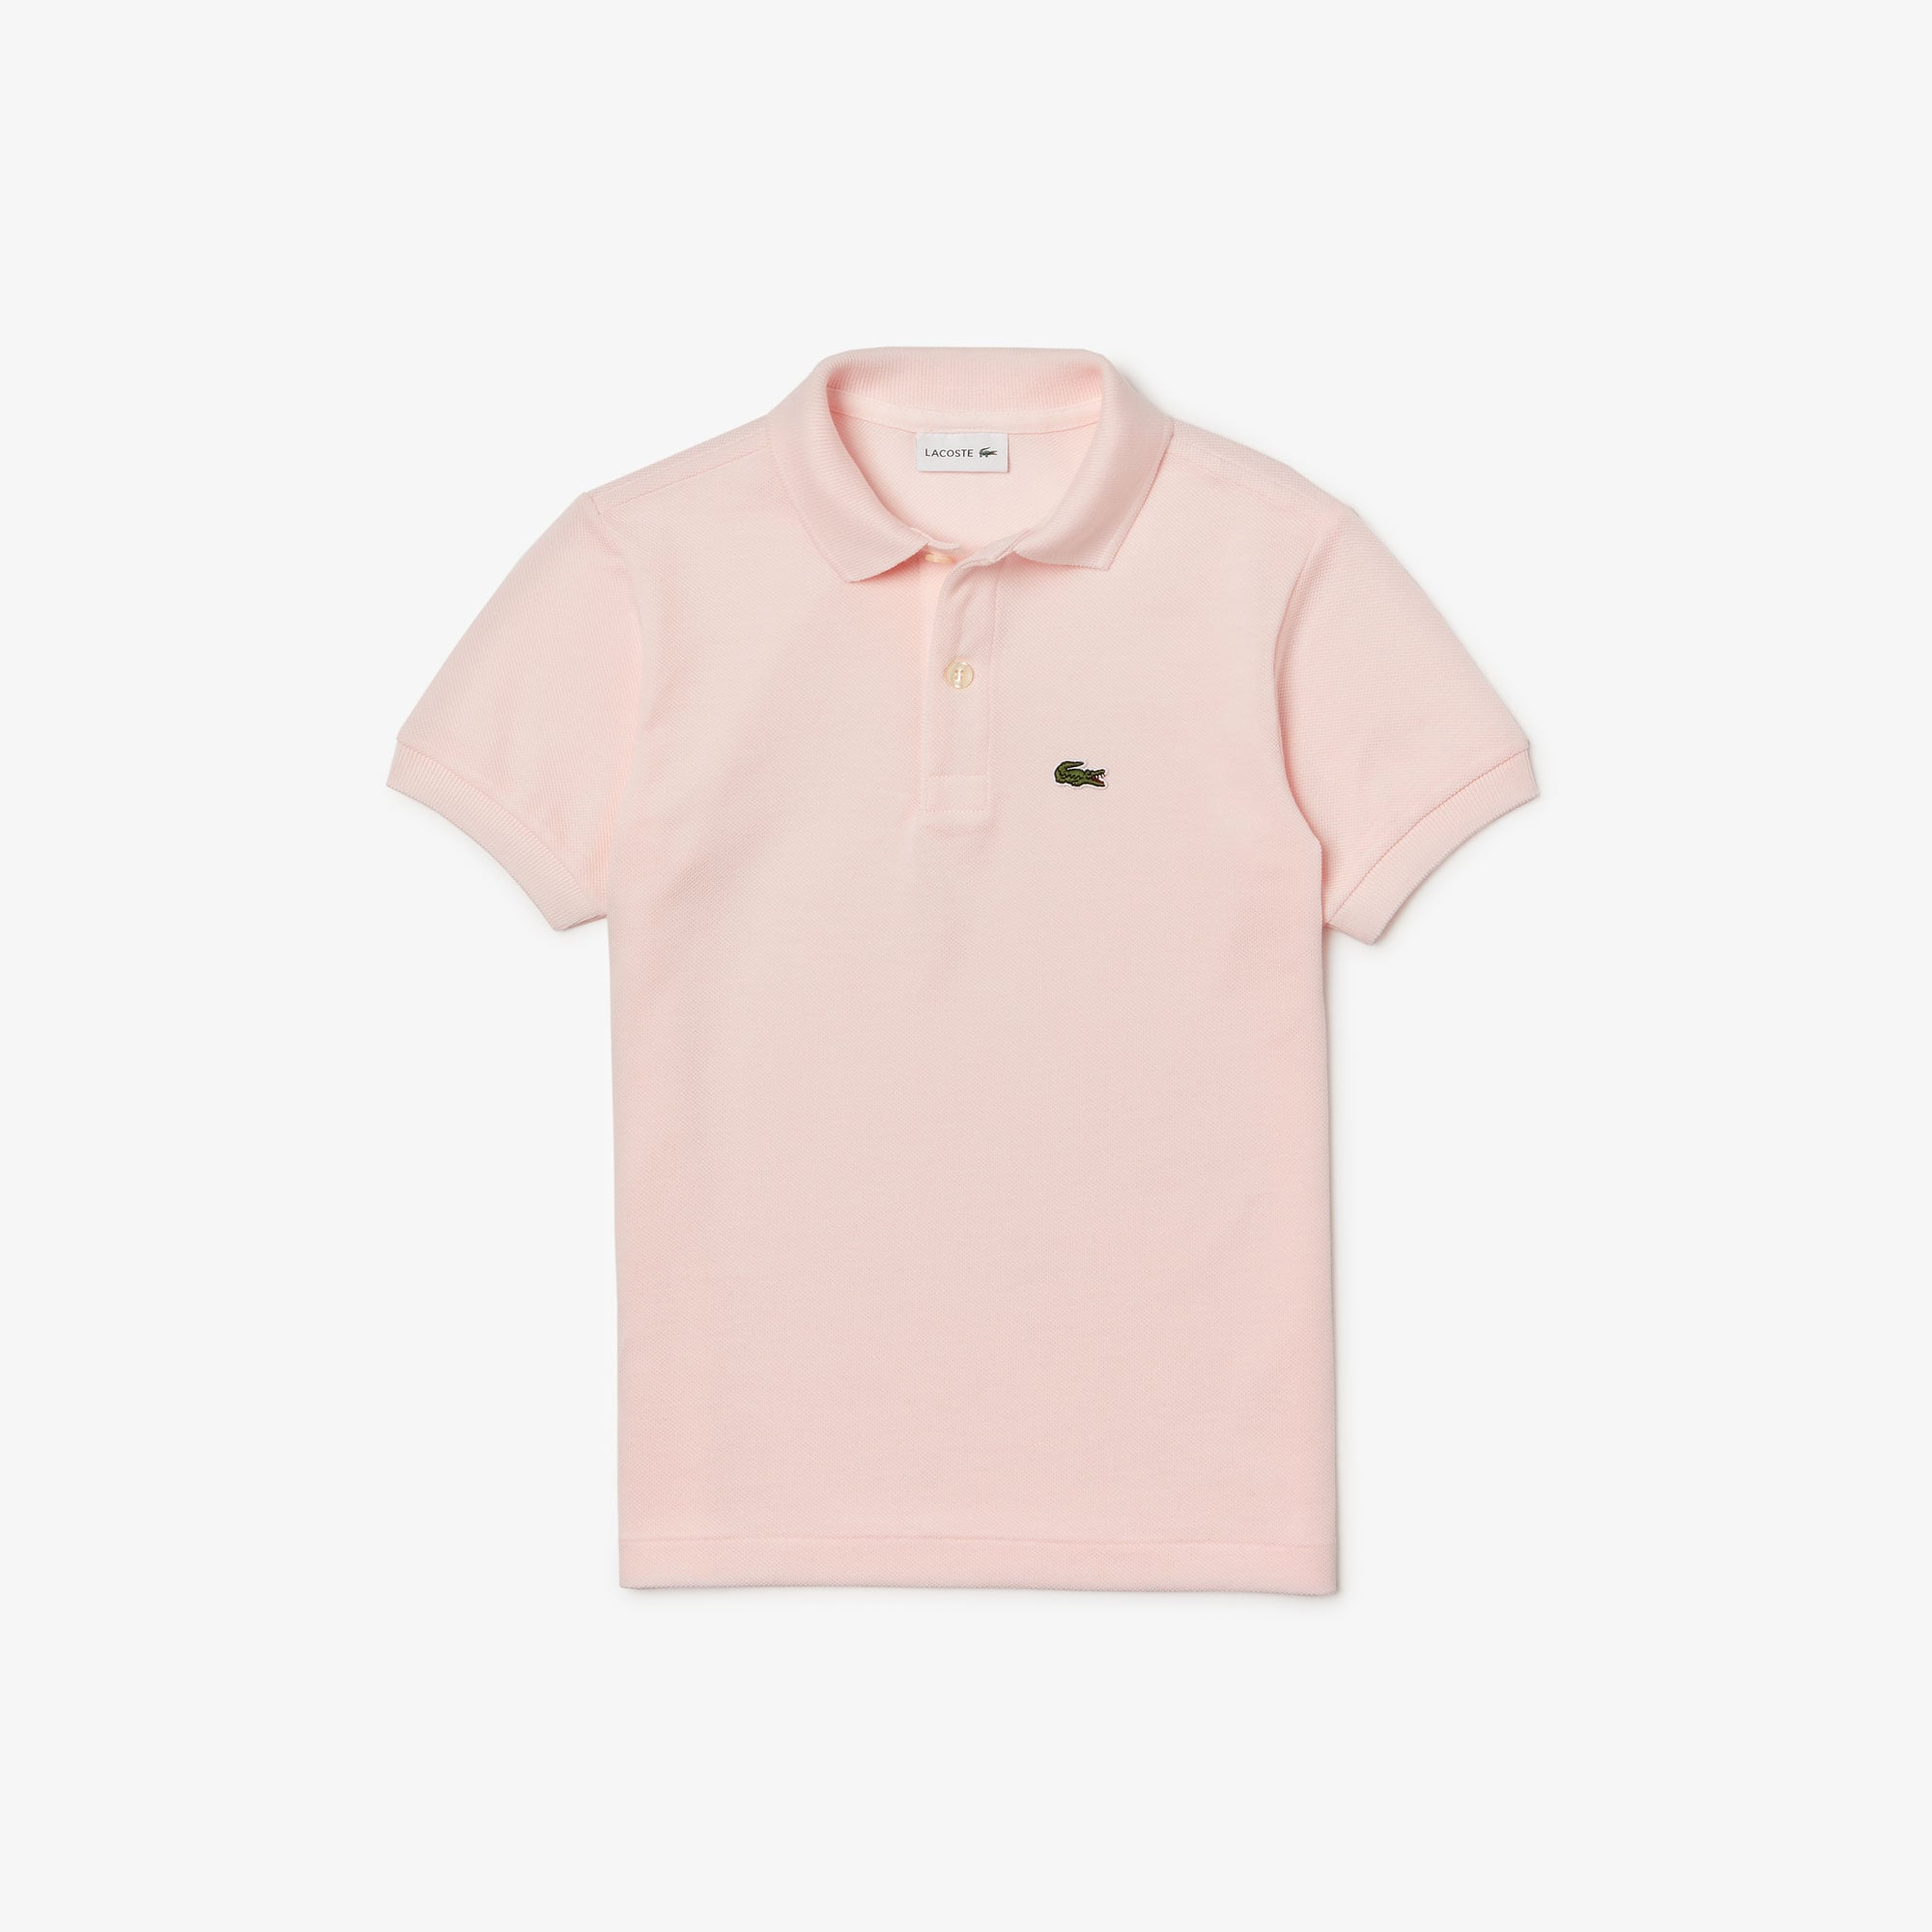 347ca3062 All Poloshirts   The Polo Collection   LACOSTE